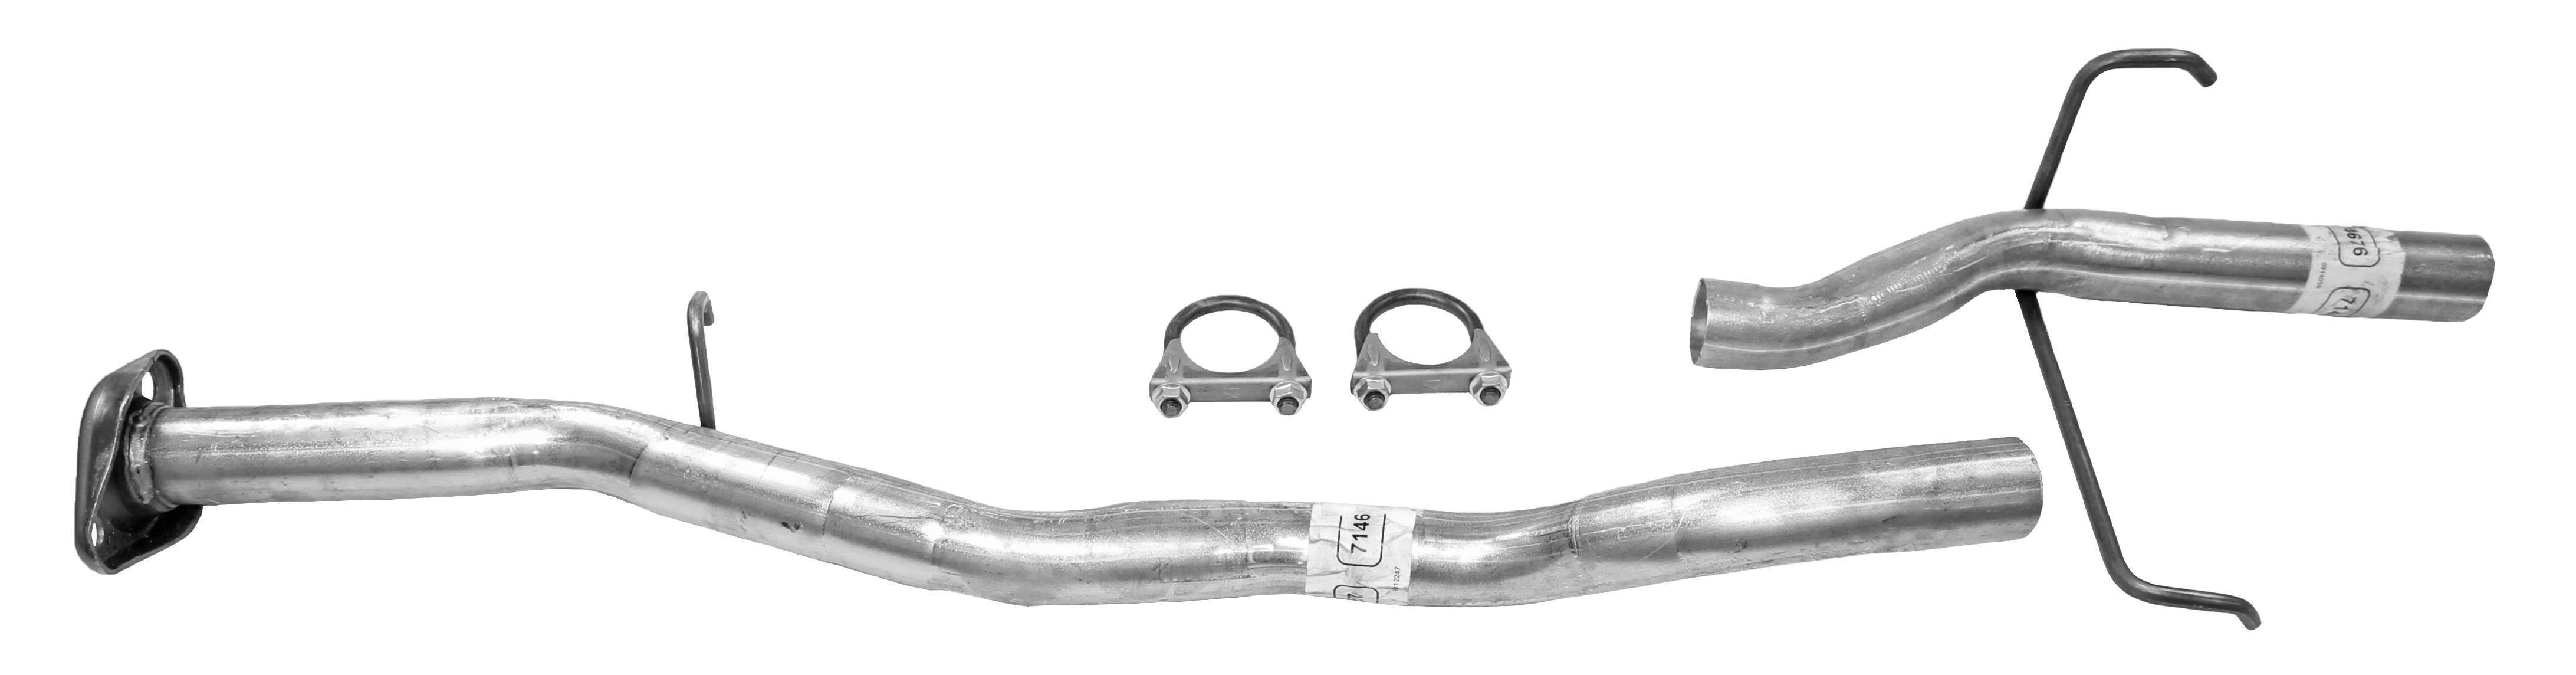 Exhaust Pipe Installation Kit